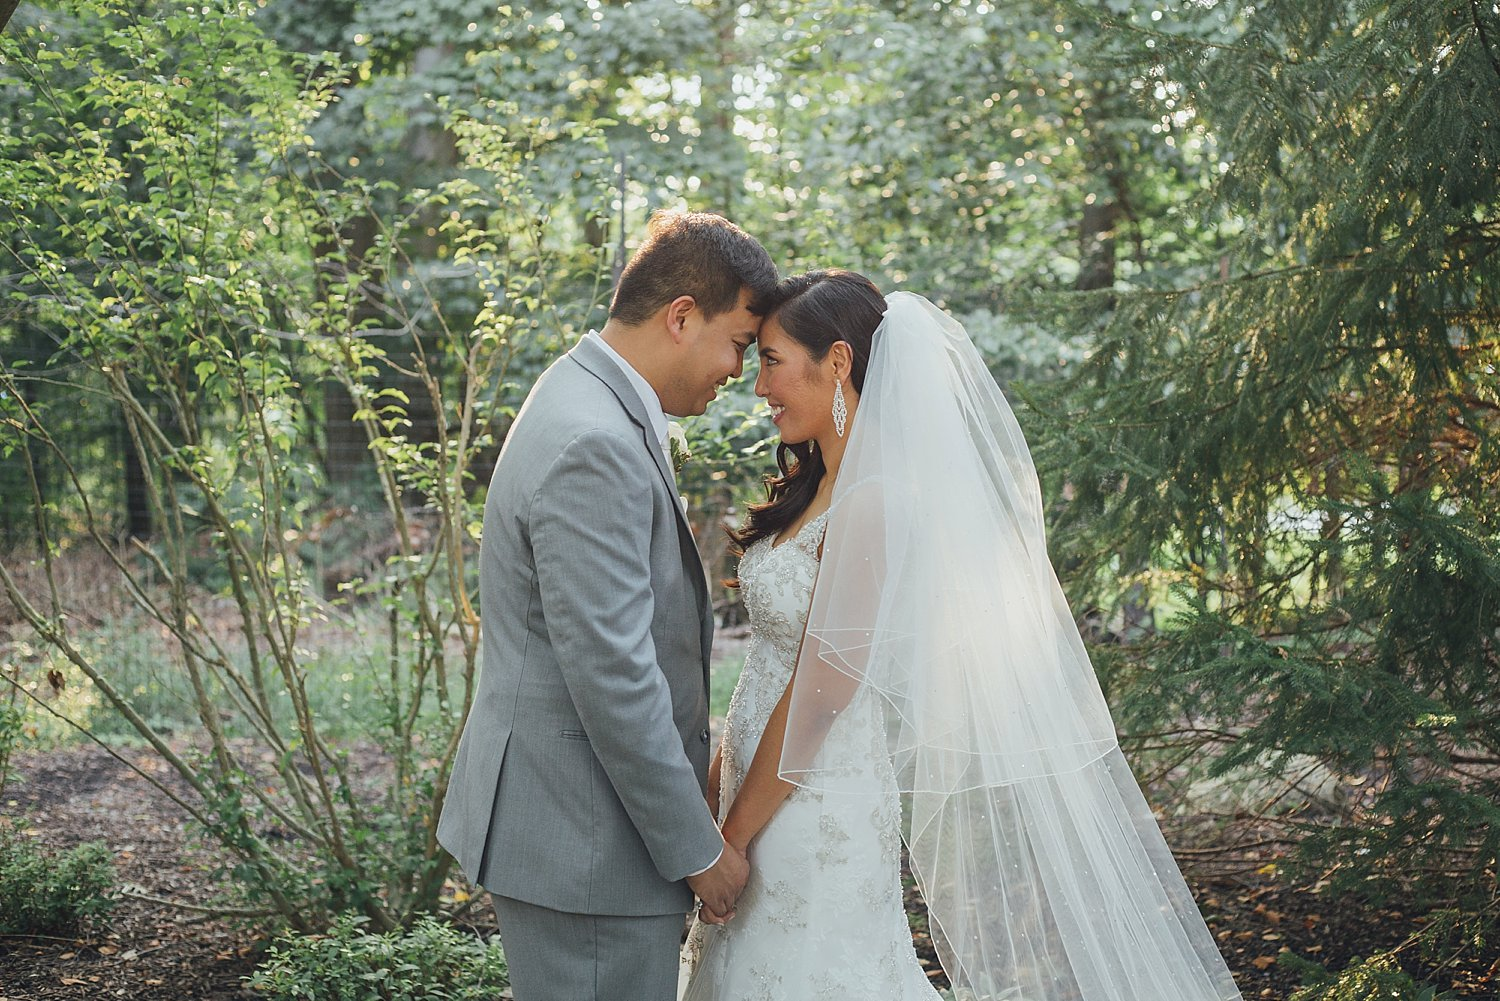 nyc-wedding-photography-nj-tri-state-cinematography-intothestory-by-moo-jae_0297.jpg